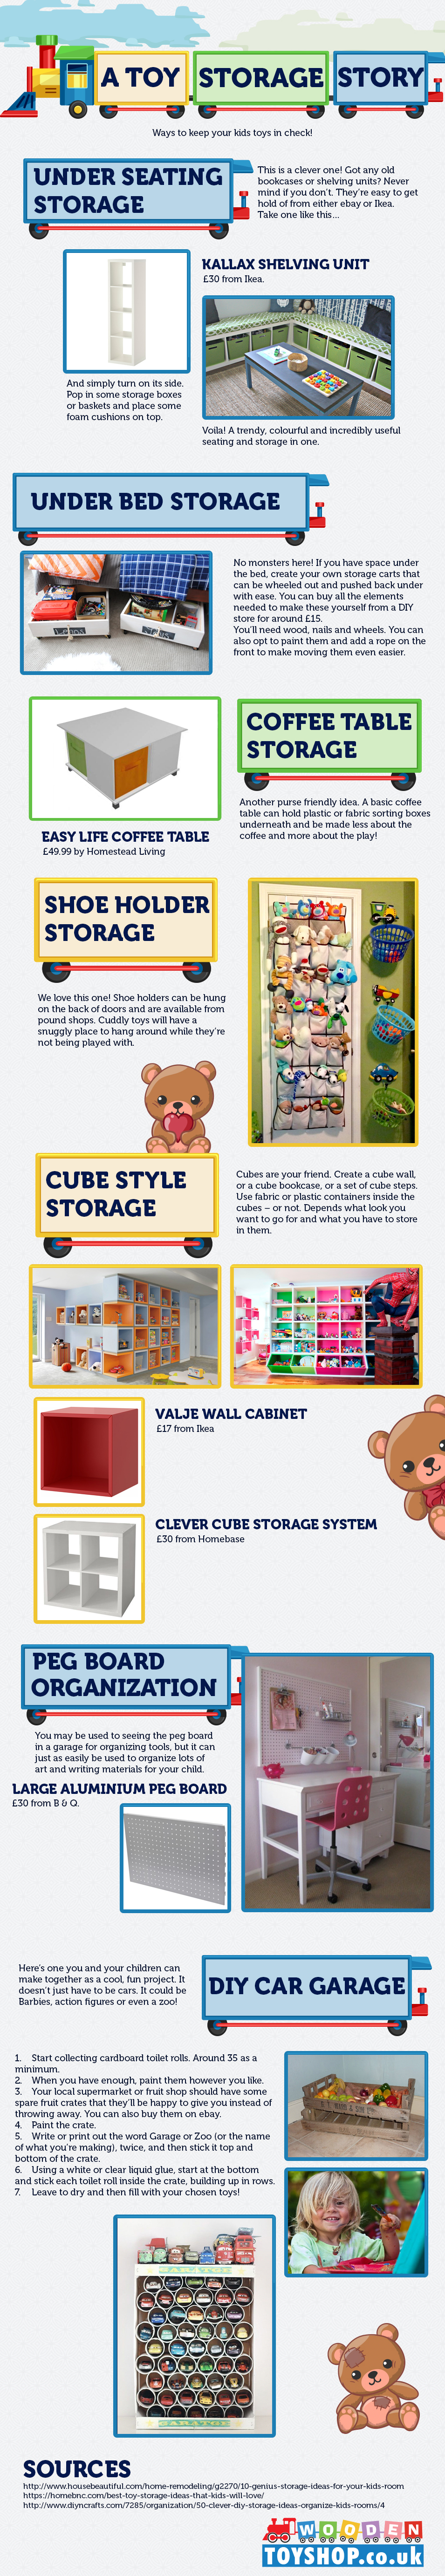 Storage Ideas for Toys